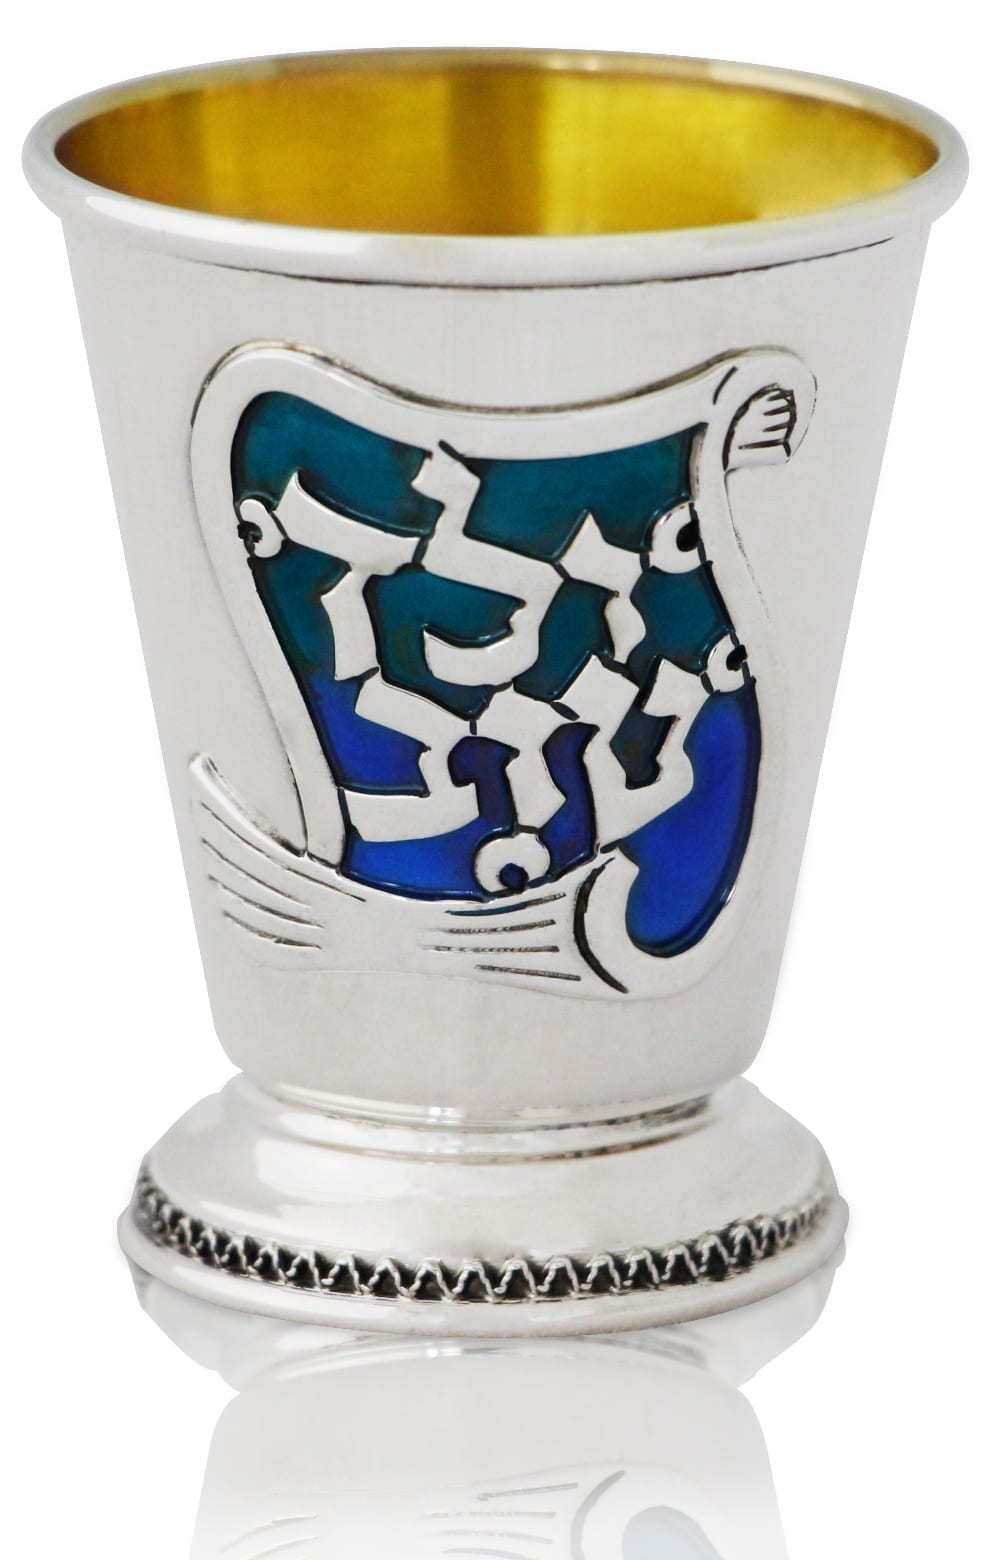 sterling silver & colorful yeled tov boy cup, judaica made in israel